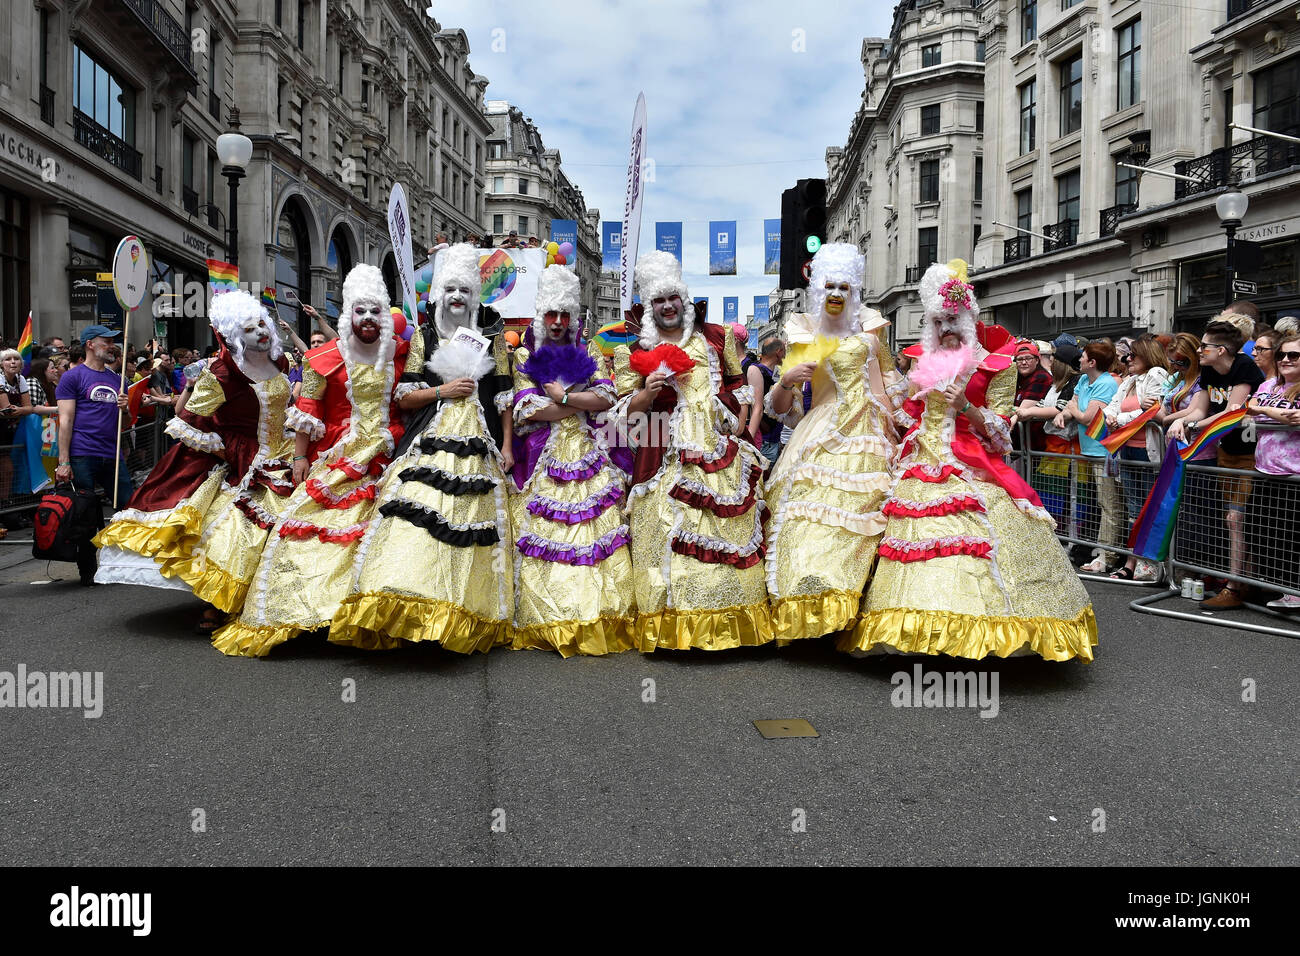 London, UK. 08th July, 2017. The drag queers during Pride In London on Saturday. Photo : Taka G Wu Credit: Taka - Stock Image